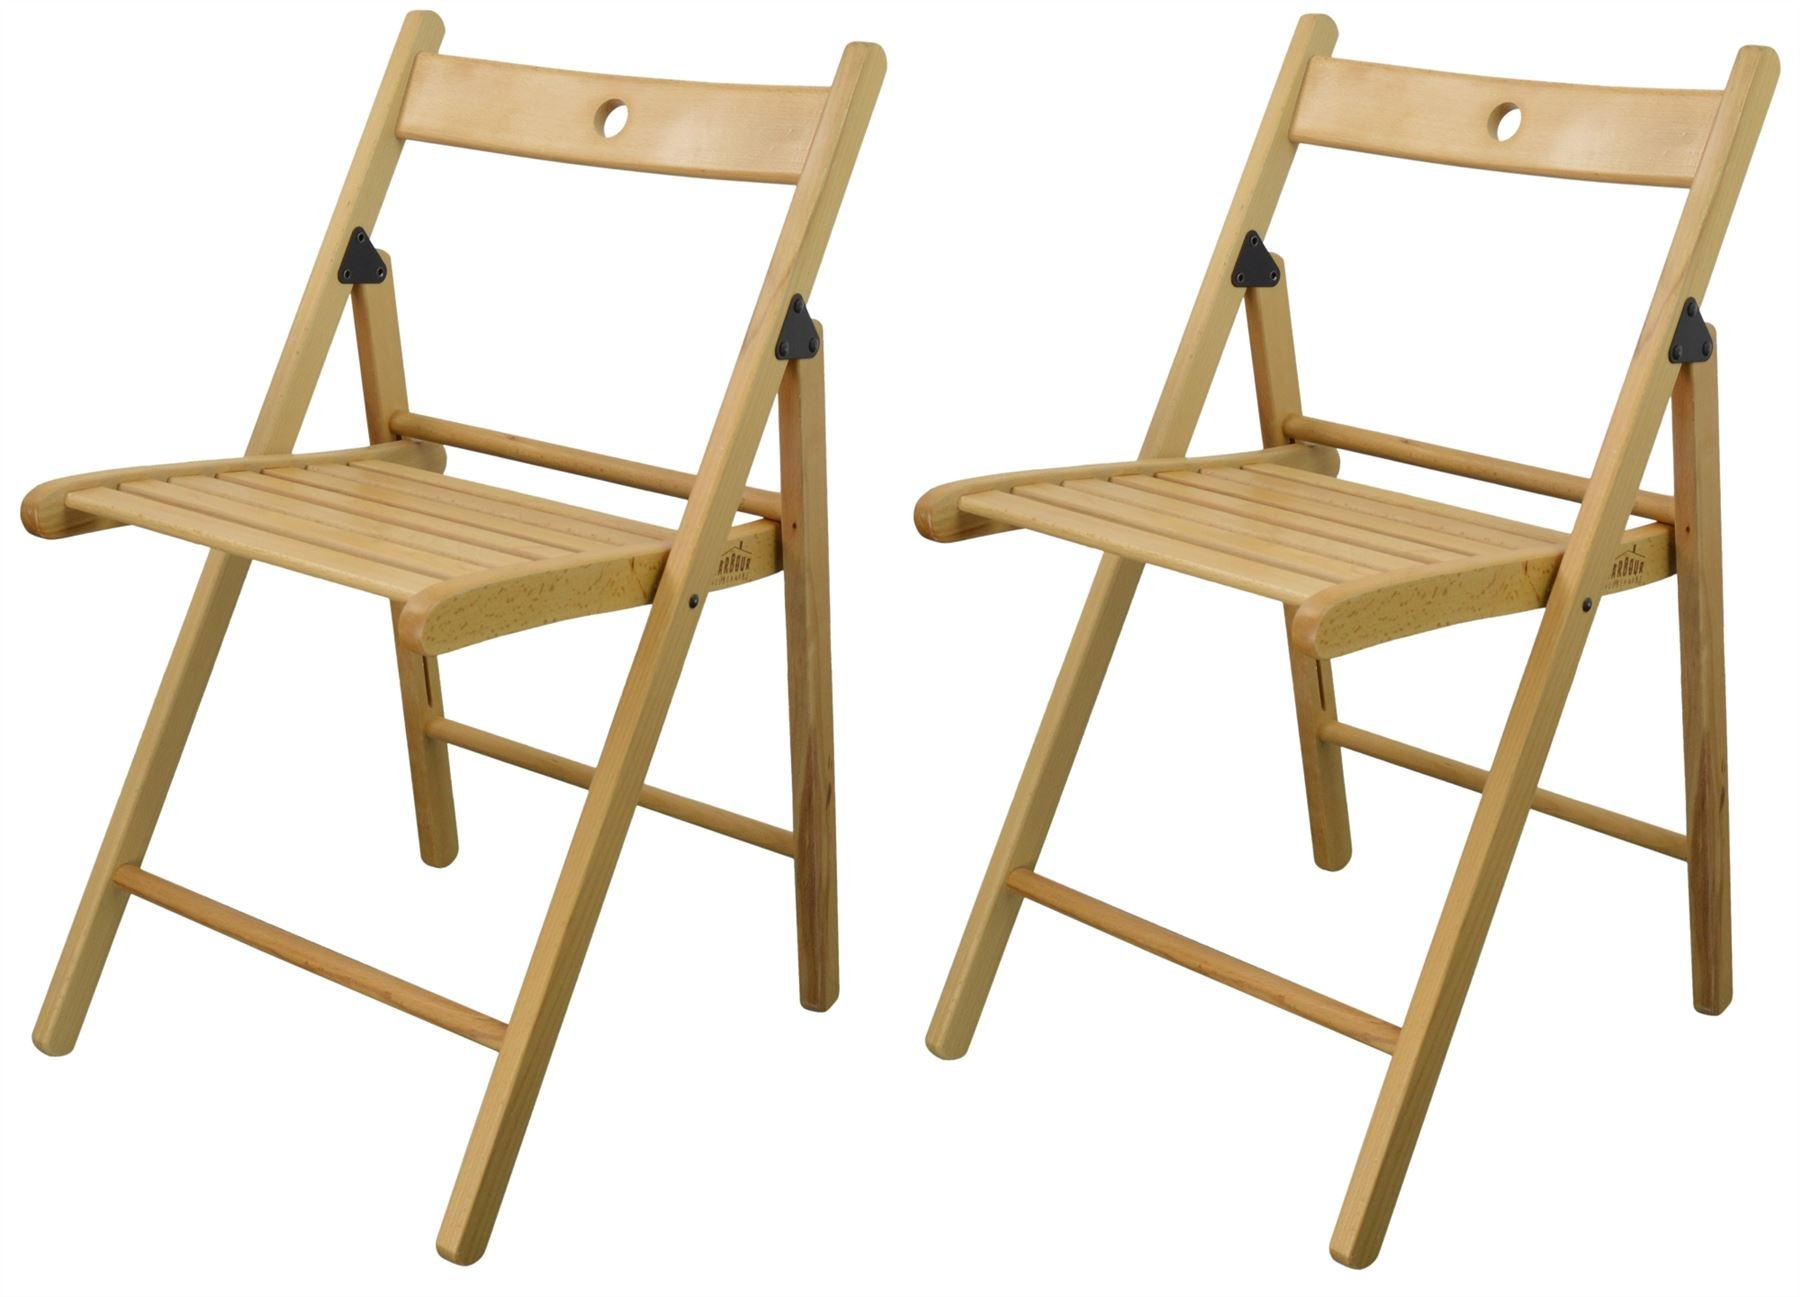 Harbour Housewares Wooden Folding Chairs – Natural Wood Colour – Pack of 2